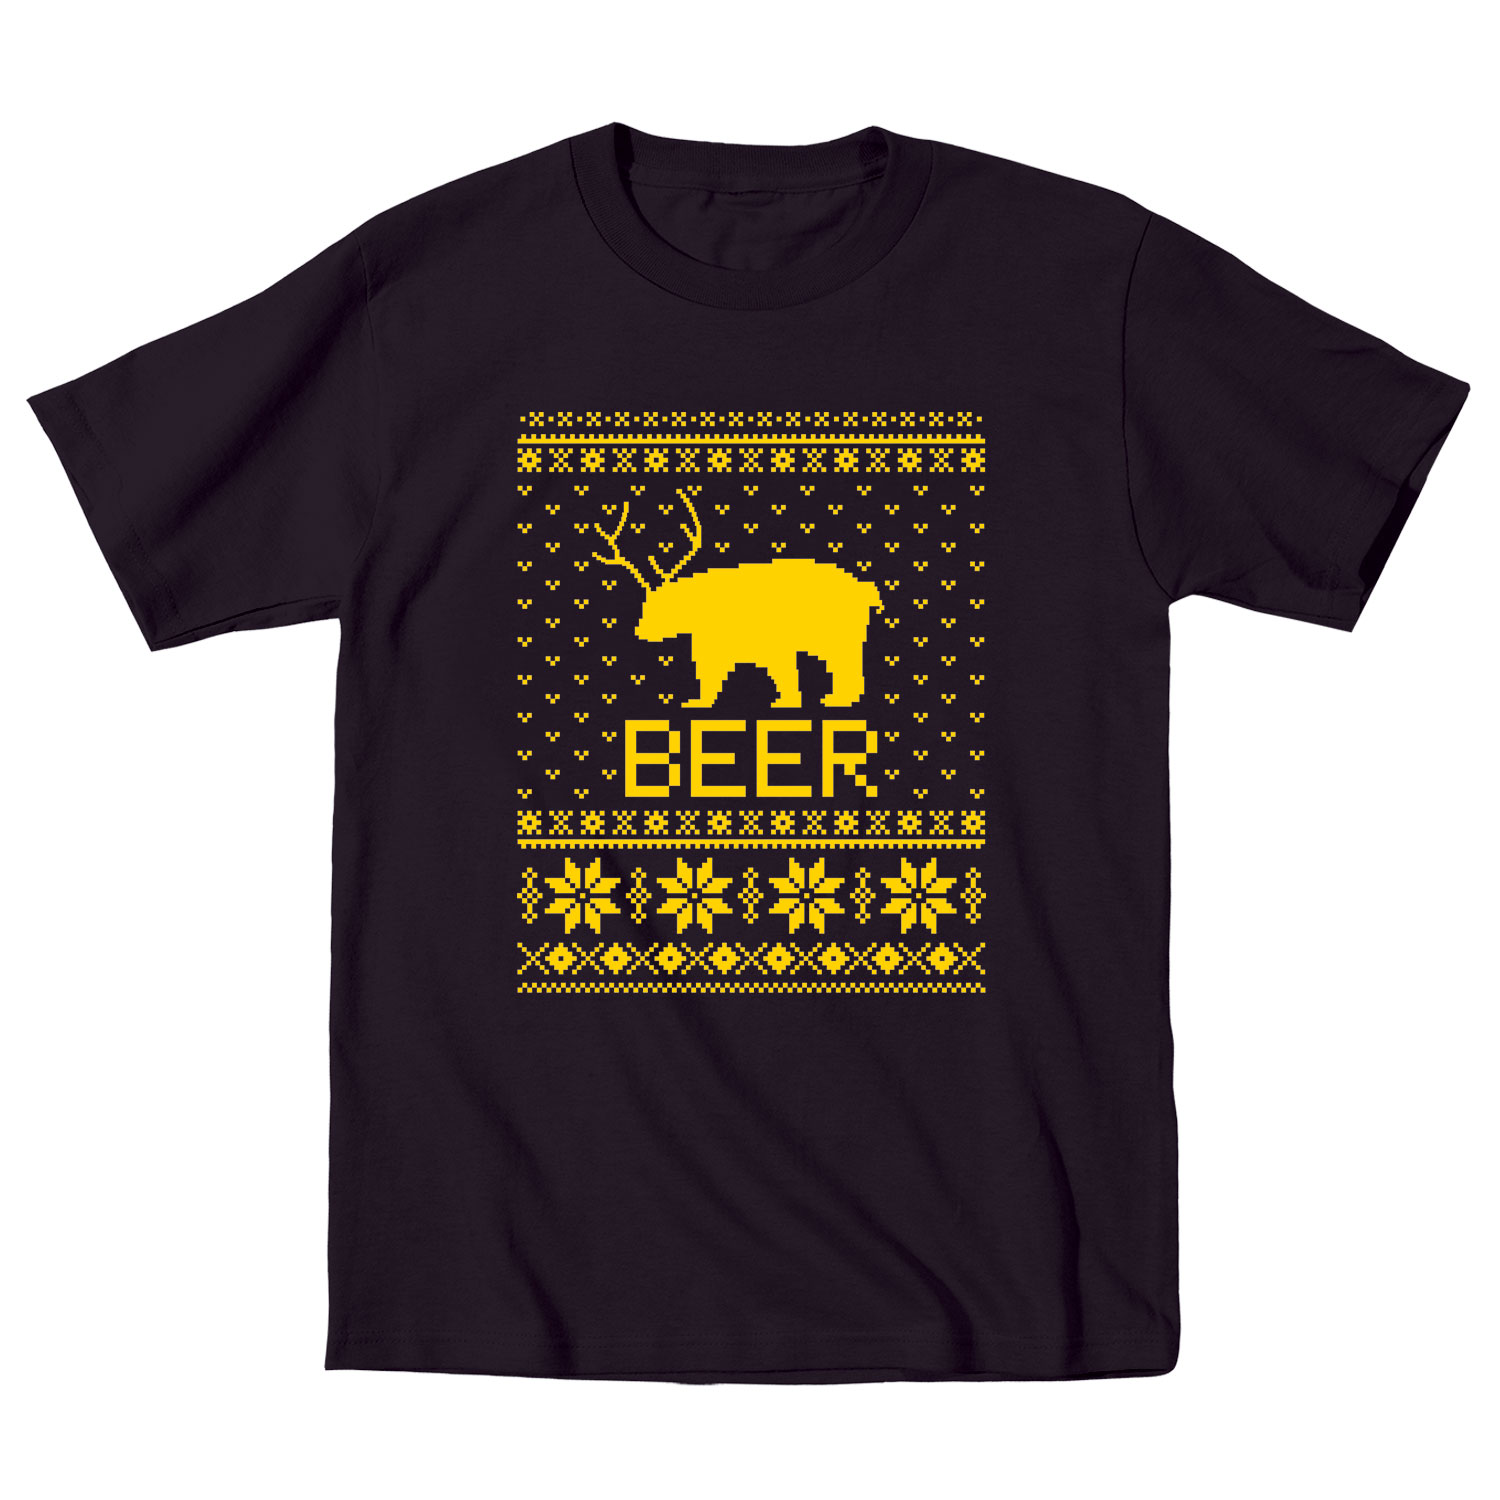 Details about ugly sweater party beer bear funny drinking christmas